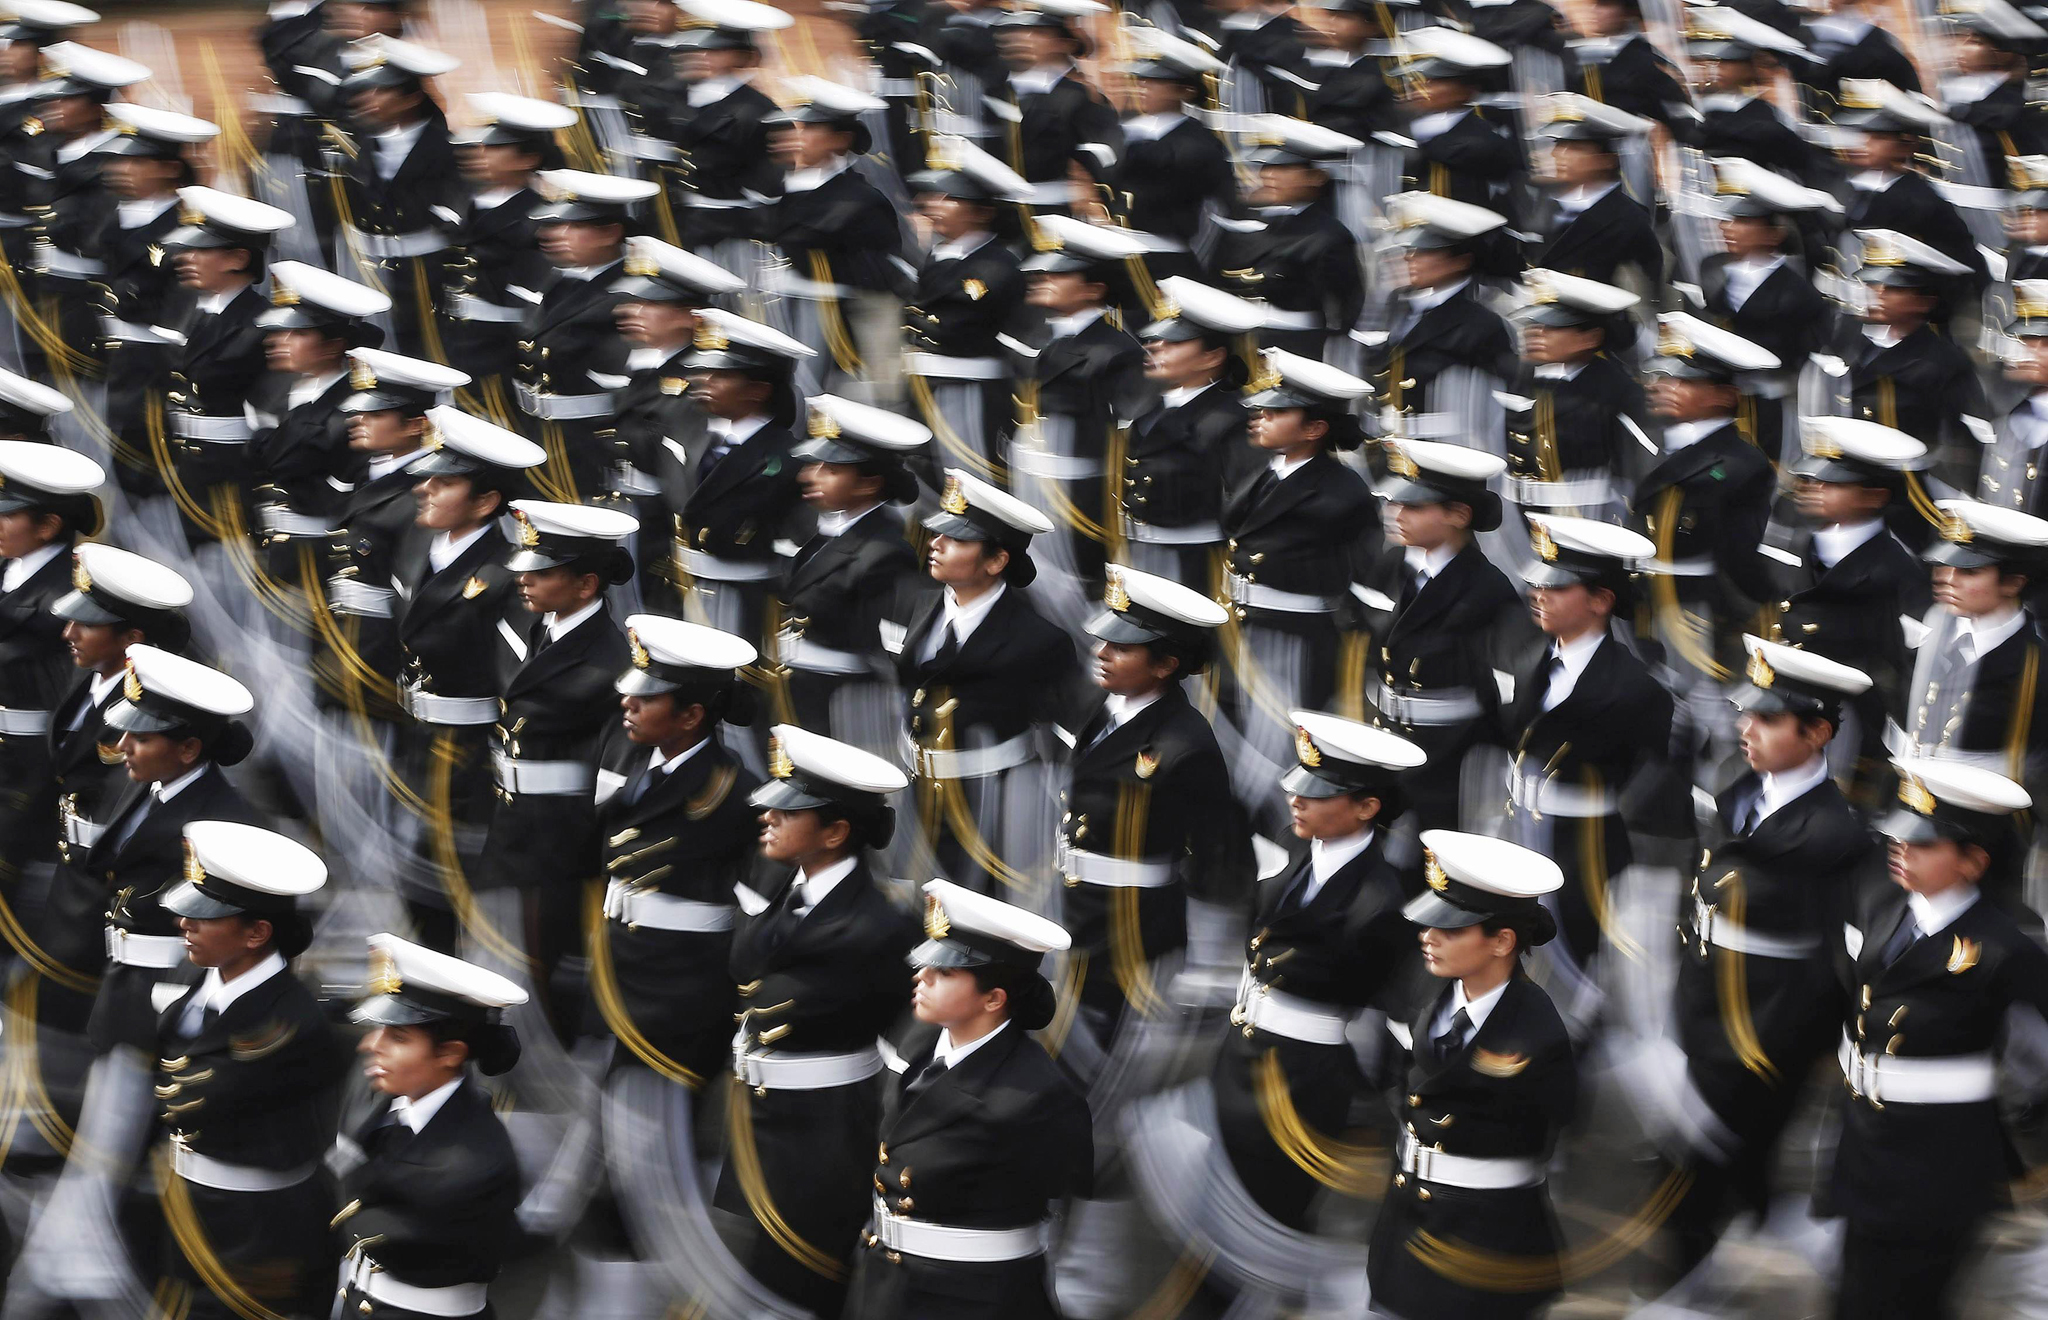 Indian soldiers march during the full dress rehearsal for the Republic Day parade in New Delhi January 23, 2015. India's capital will turn into a virtual fortress for U.S. President Barack Obama's visit this weekend, with heightened security measures, including an extended no-fly zone, to protect the world's most powerful leader. Indian Prime Minister Narendra Modi, Obama and other dignitaries from the world's two largest democracies will attend India's Republic Day celebrations on January 26, which include a military parade and display of Indian weaponry. REUTERS/Adnan Abidi (INDIA - Tags: MILITARY ANNIVERSARY POLITICS)